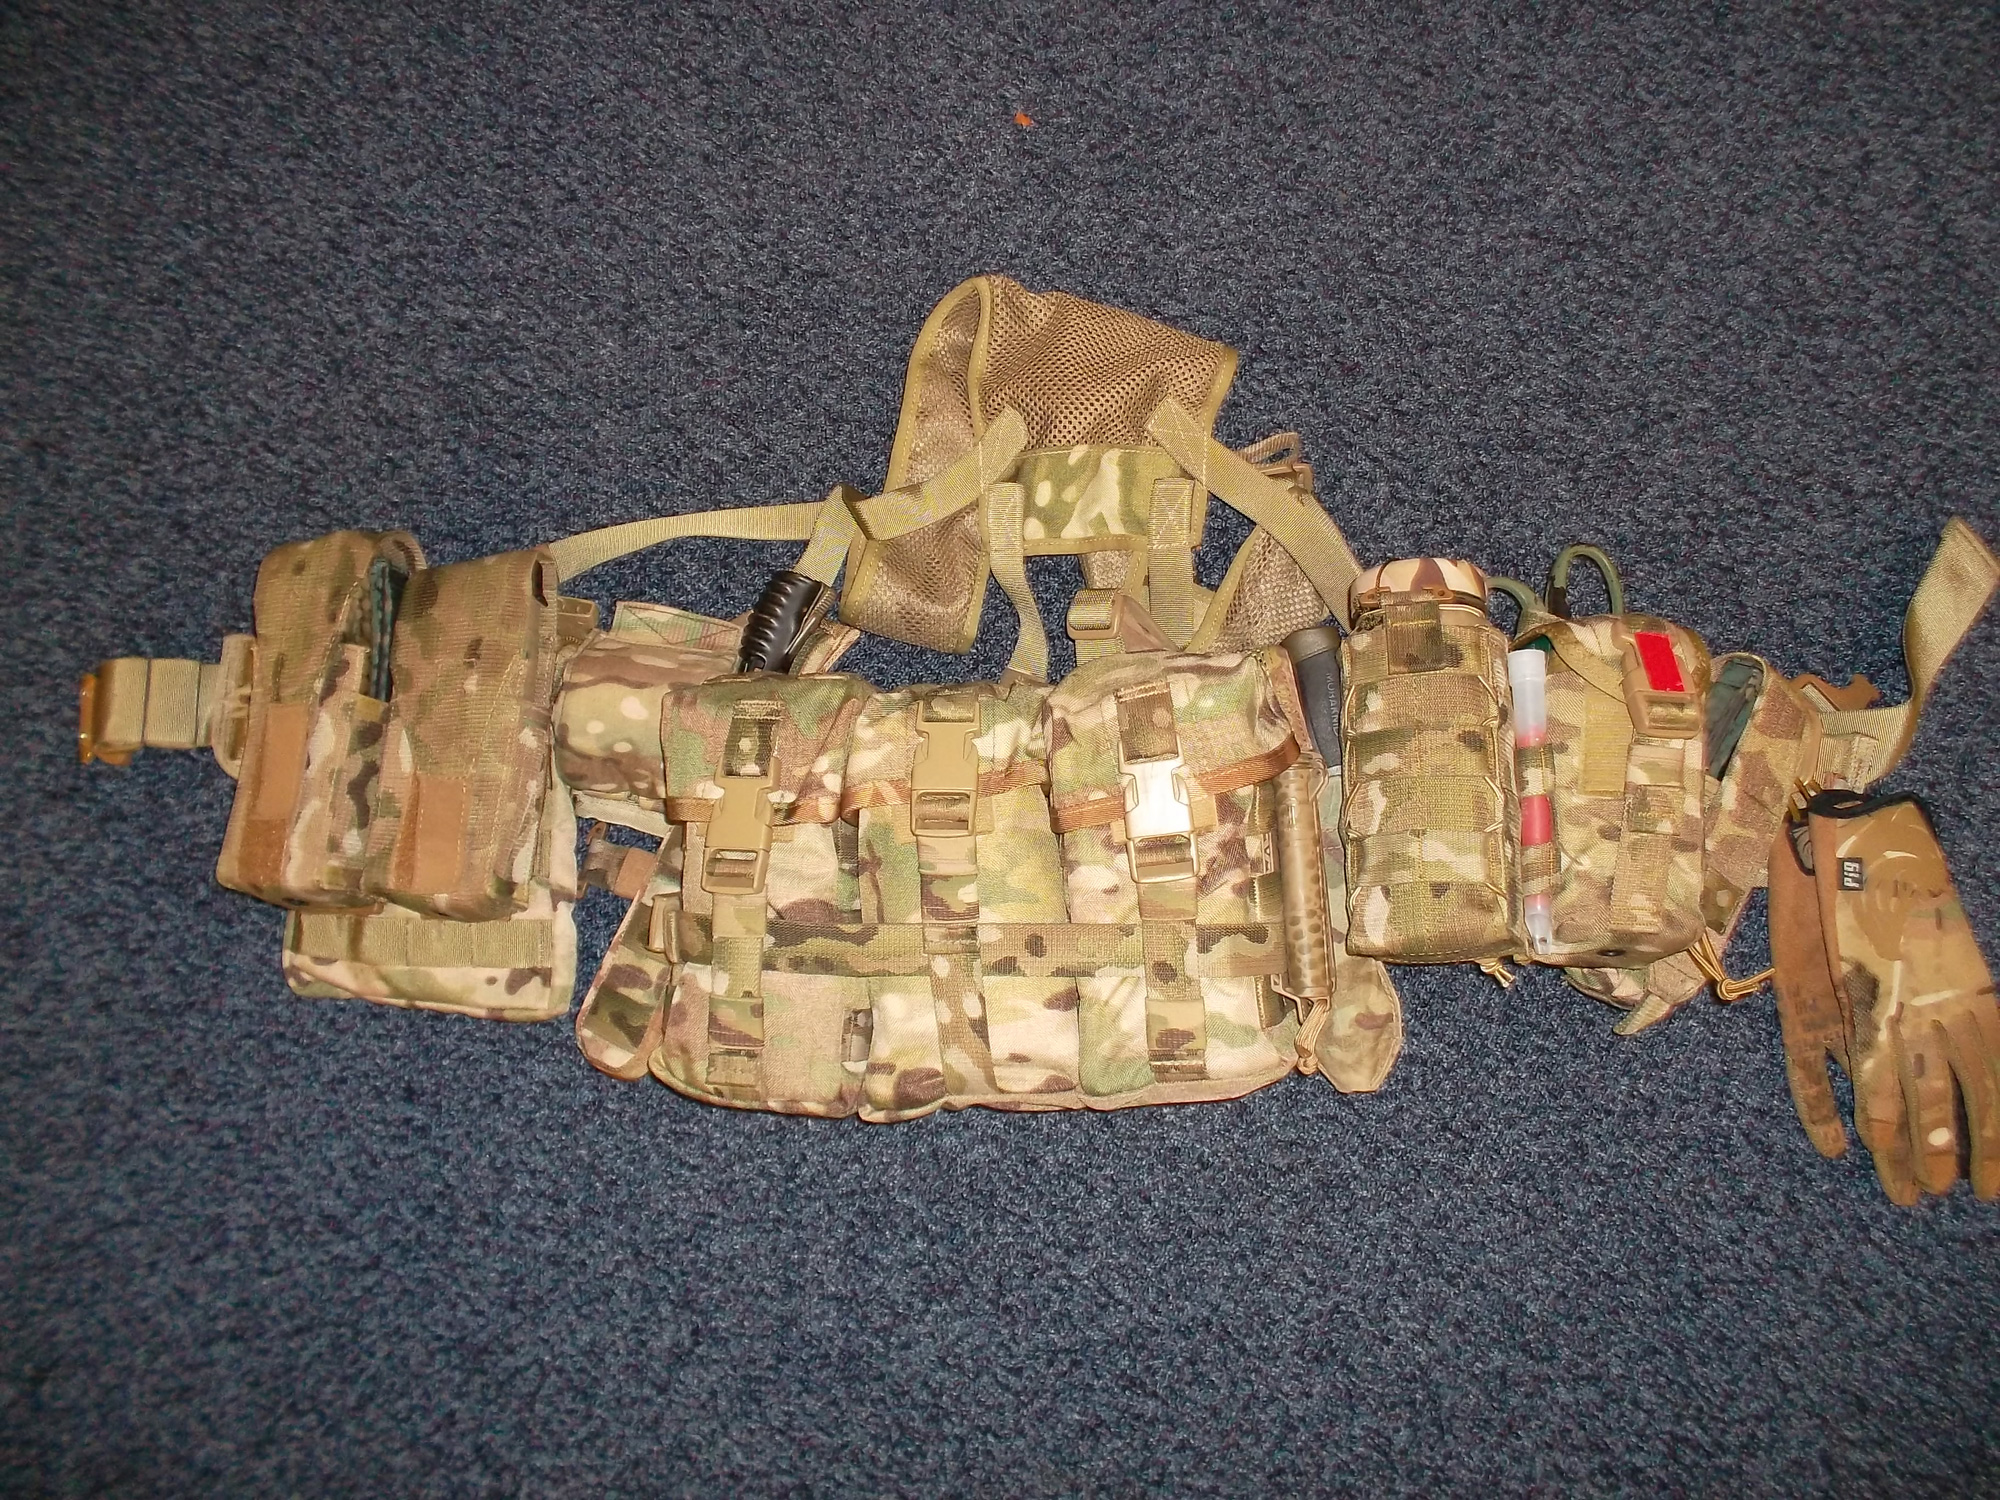 Full belt kit